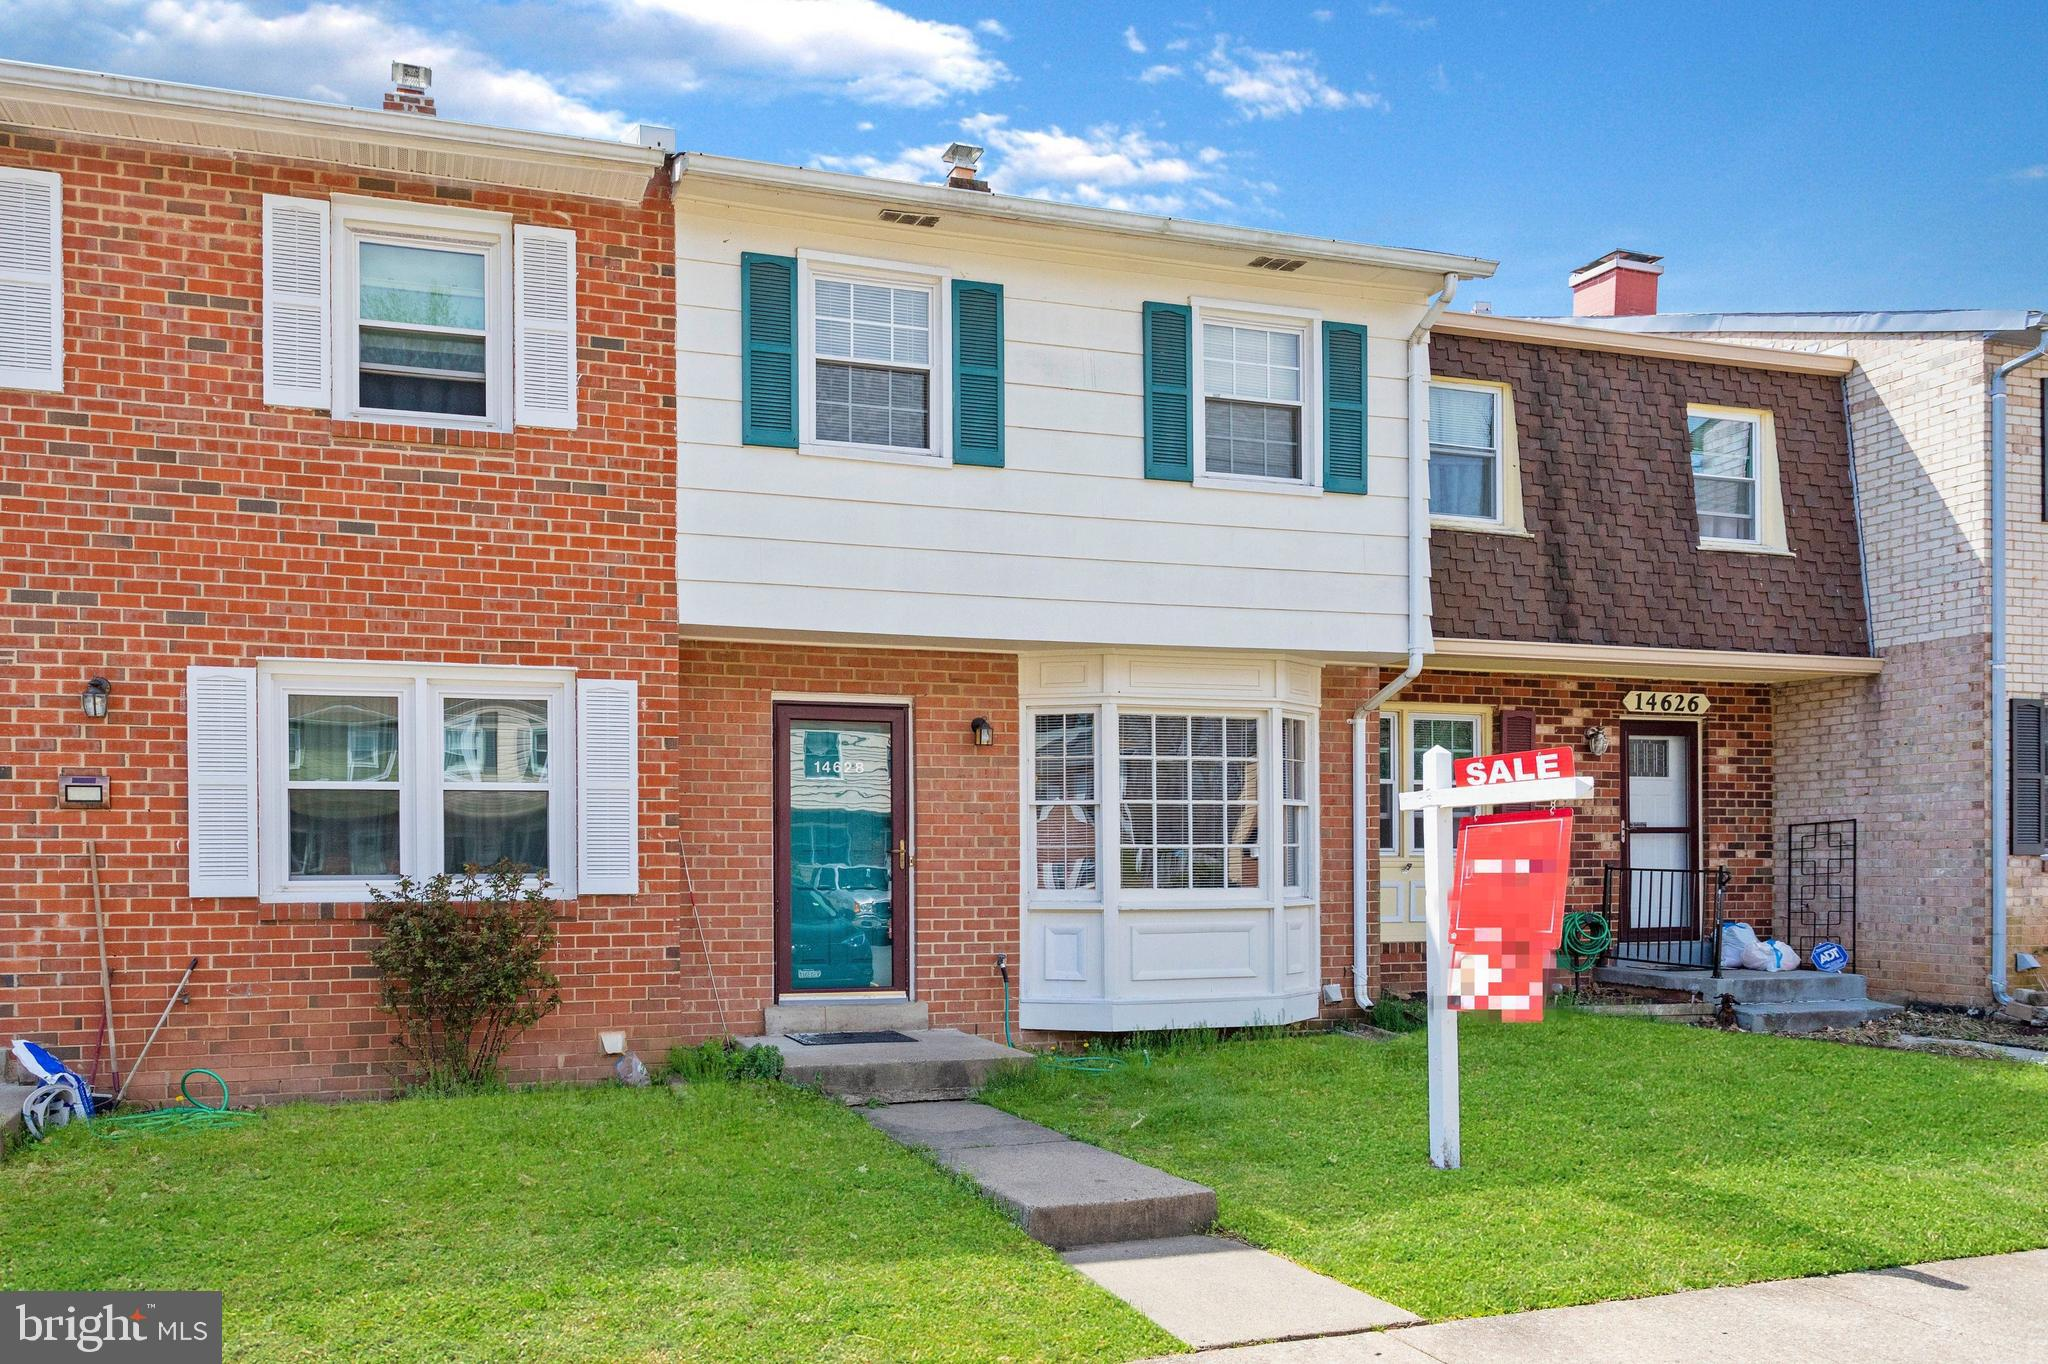 Perfect for first time home buyer! Check out the 3D tour. Well-lit 3br/1.2 bath townhome; large open kitchen; granite countertops; 3 finished levels; beautifully remodeled bathrooms; close to school, shopping, I-95; hardwood in basement; wood laminate main level; recessed lighting; attic storage; finished basement could be 4th. bedroom; fireplace; walkout basement with bonus room; newer water heater; updated appliances~